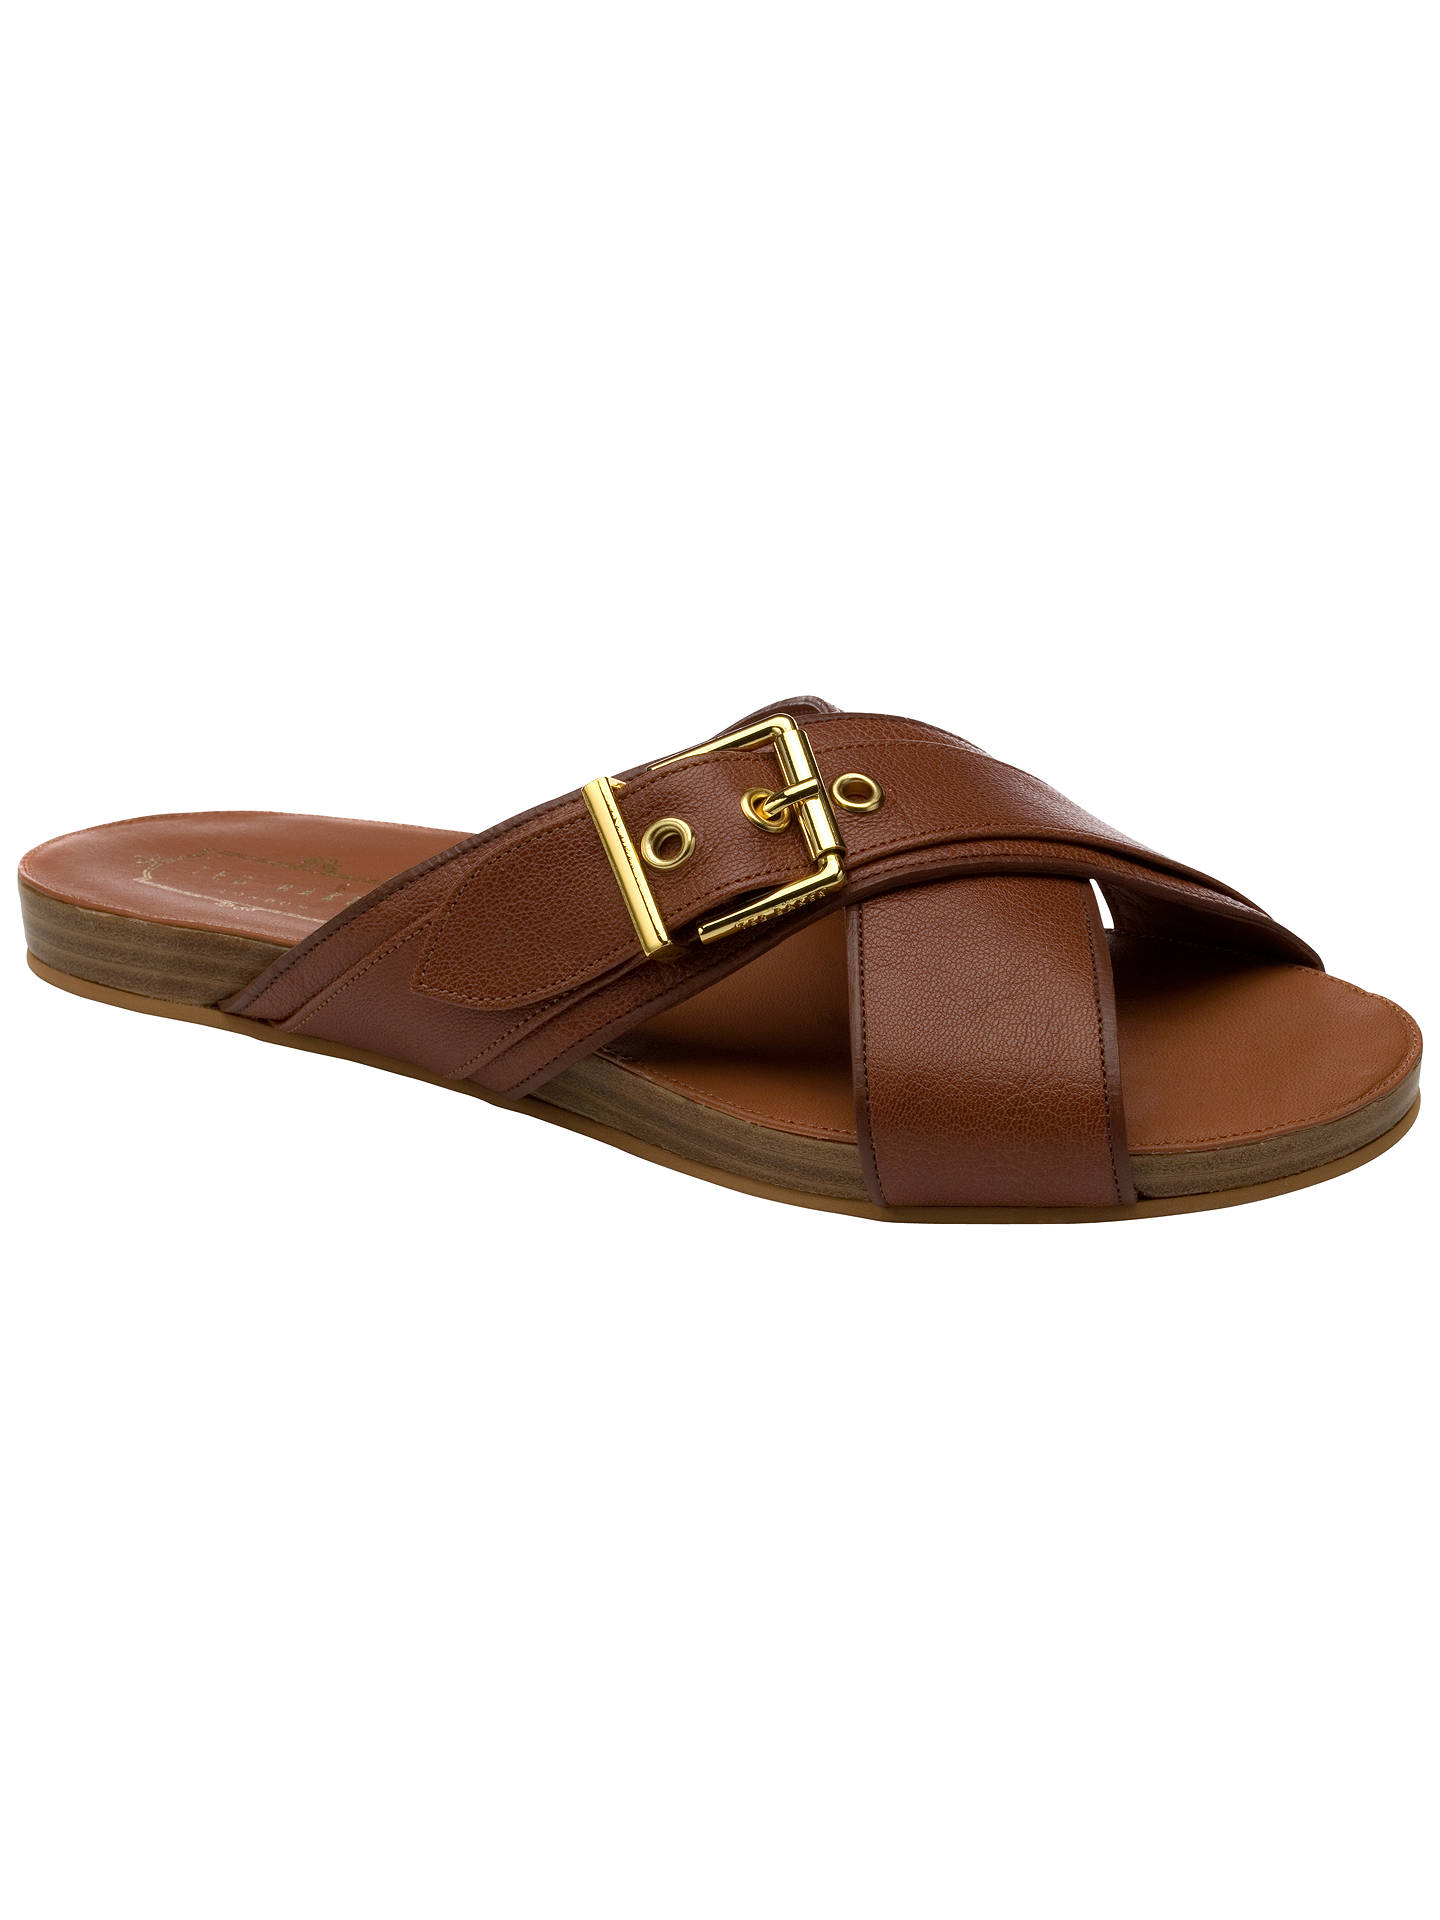 448758bef93879 Ted Baker Lapham Flat Slip On Sandals at John Lewis   Partners